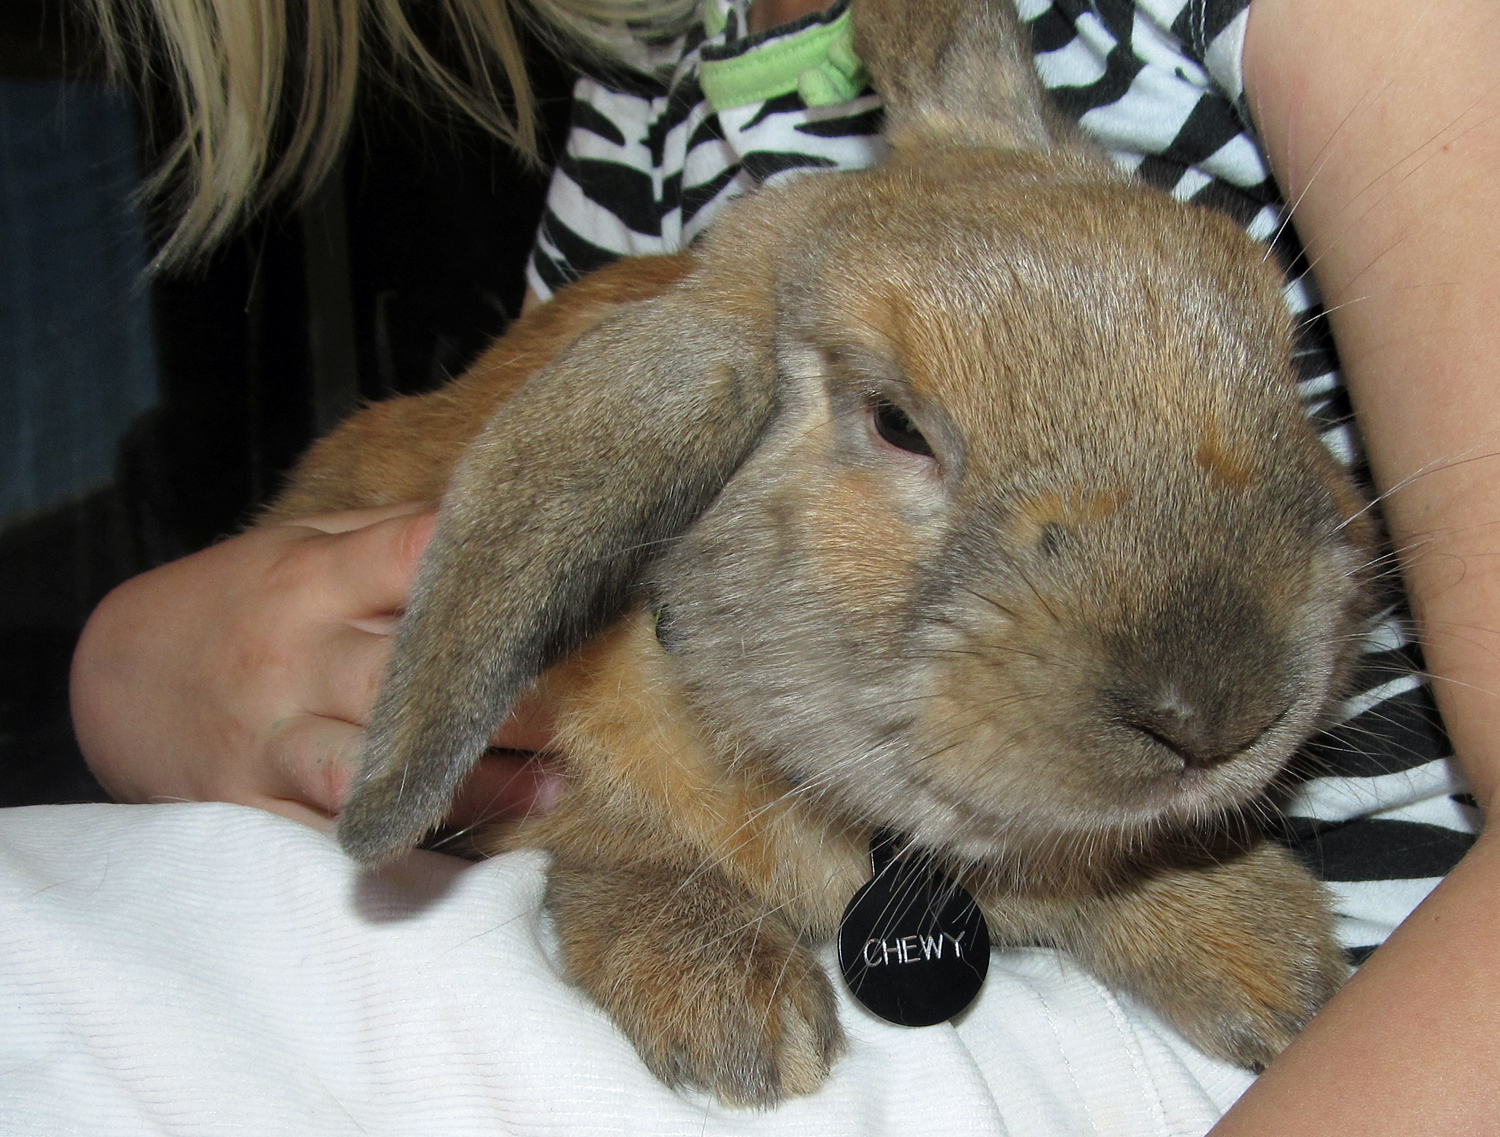 Chewy the Rabbit